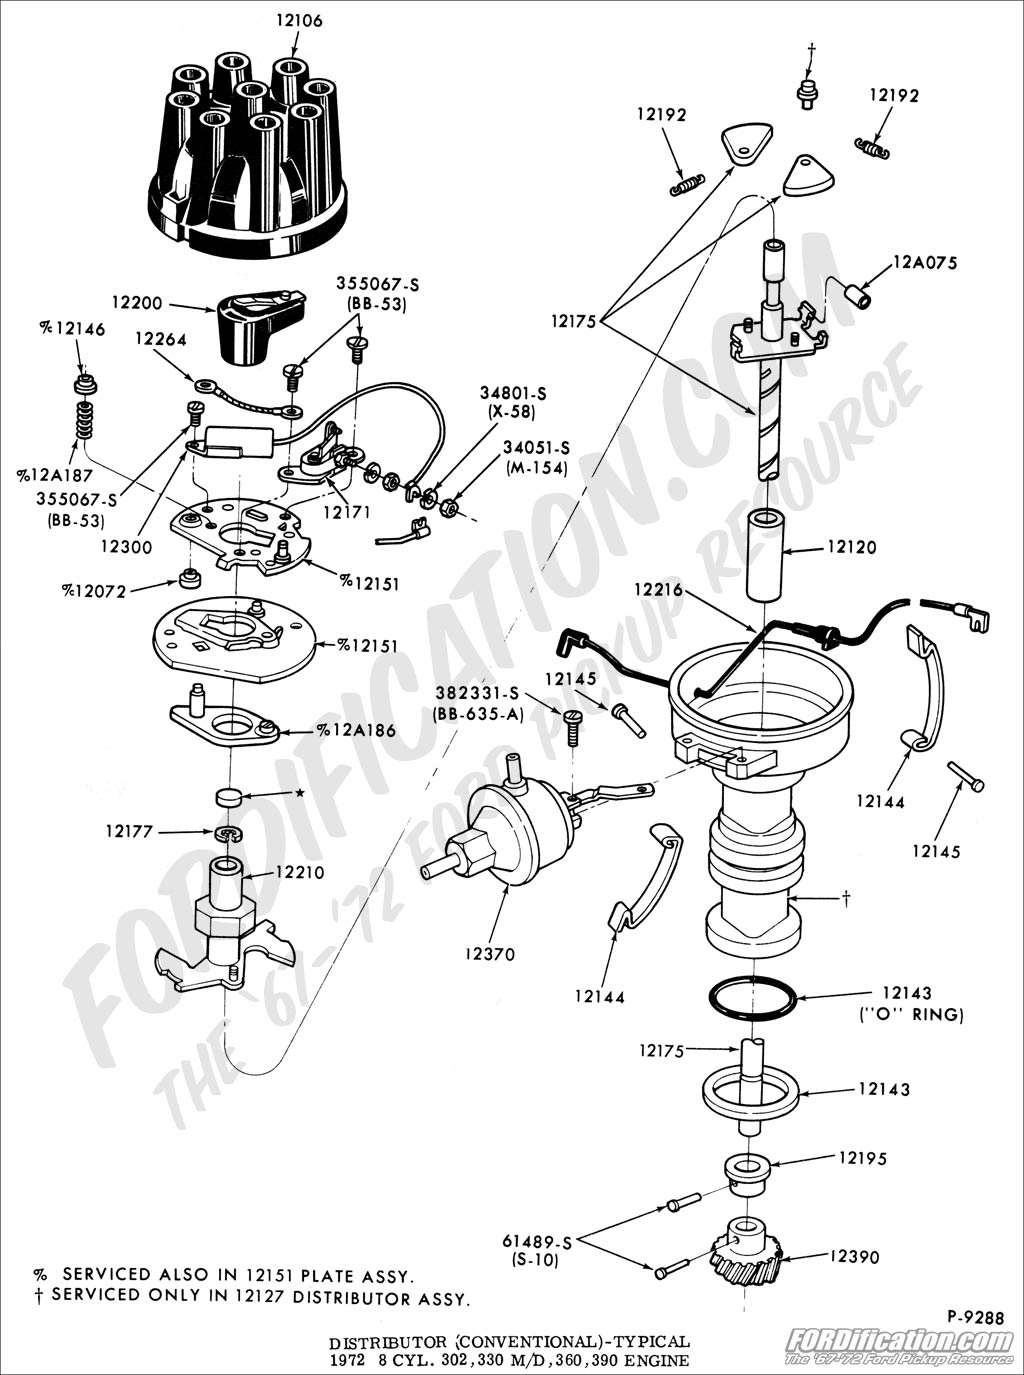 1967 Dodge Pickup Wiring Diagram Opinions About 1969 Truck Ford Technical Drawings And Schematics Section I Electrical Ignition 1965